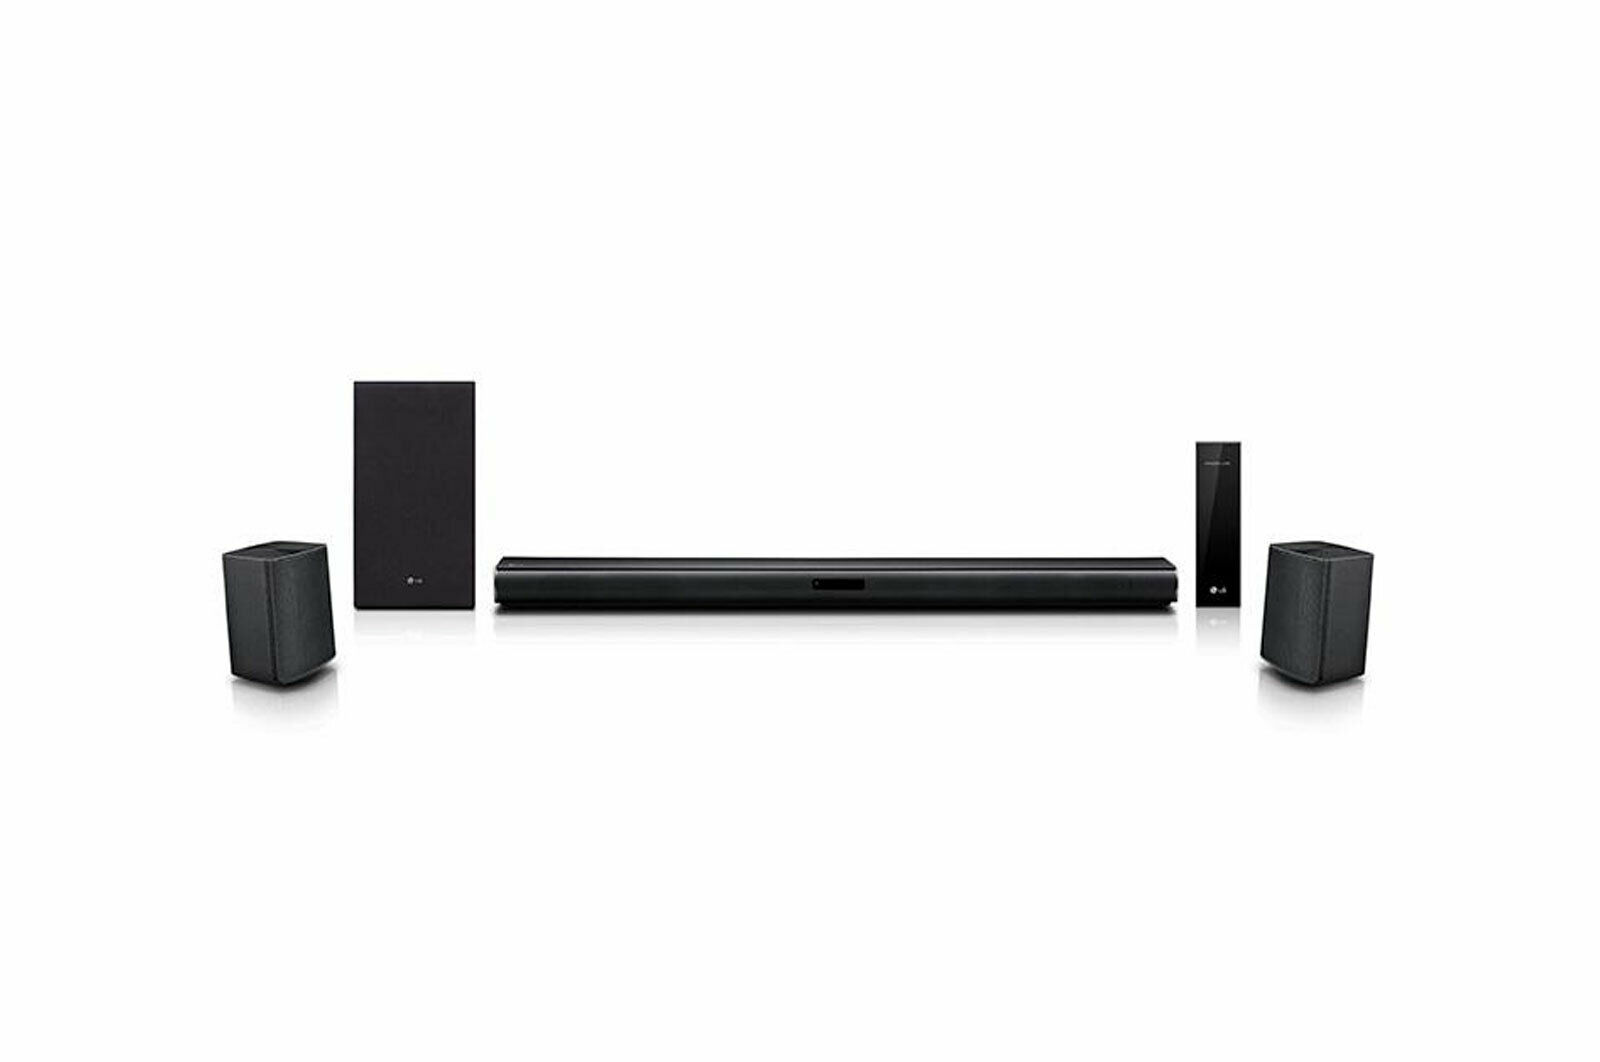 LG SJ4R 4.1 ch Sound Bar Surround System with Wireless Surround Sound Speakers